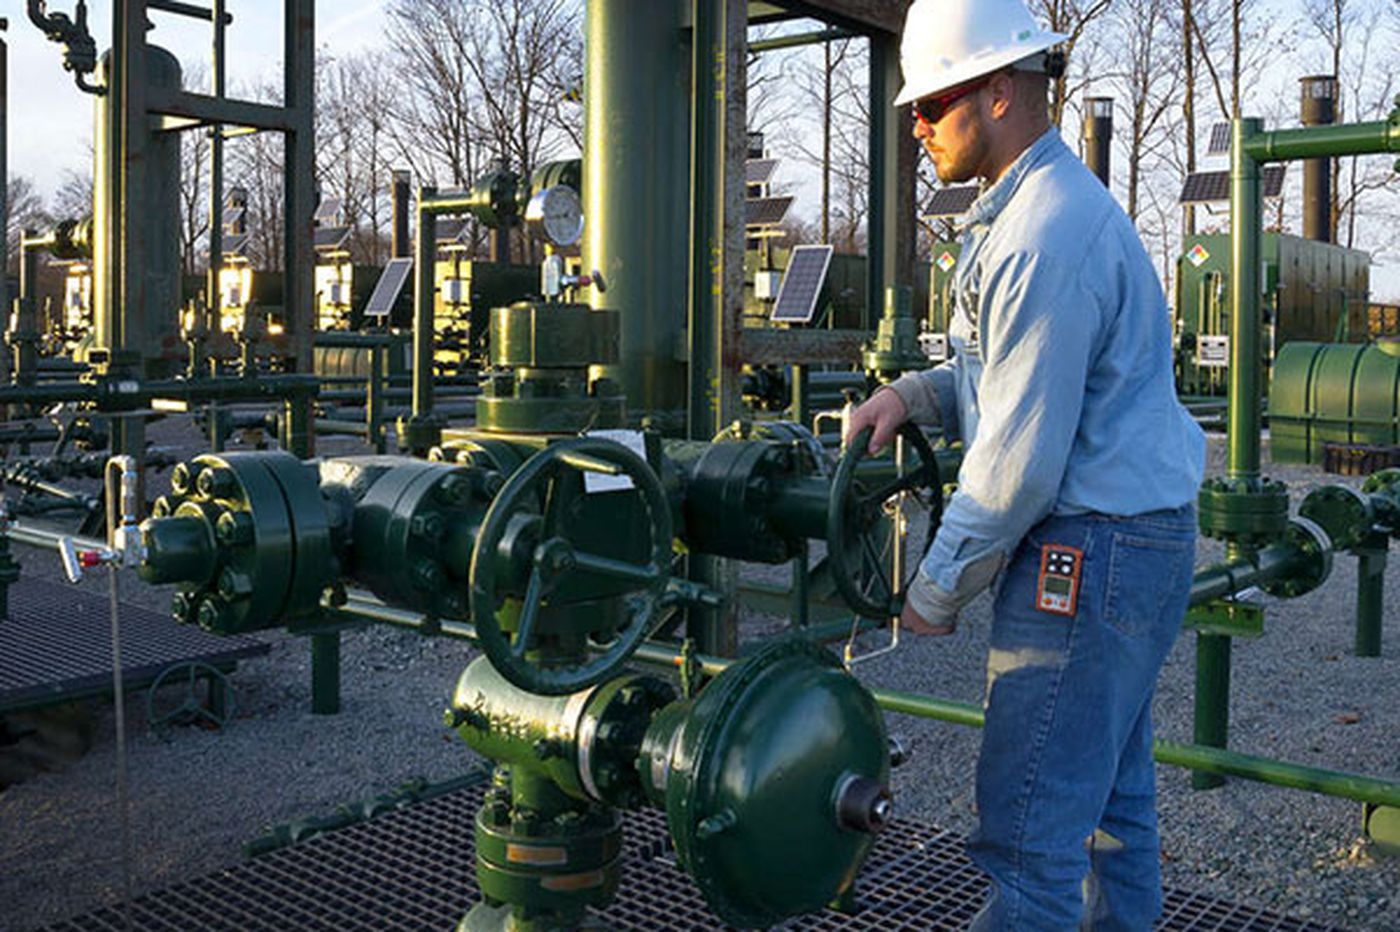 Lawmaker to propose Marcellus Shale tax to raise $ for schools